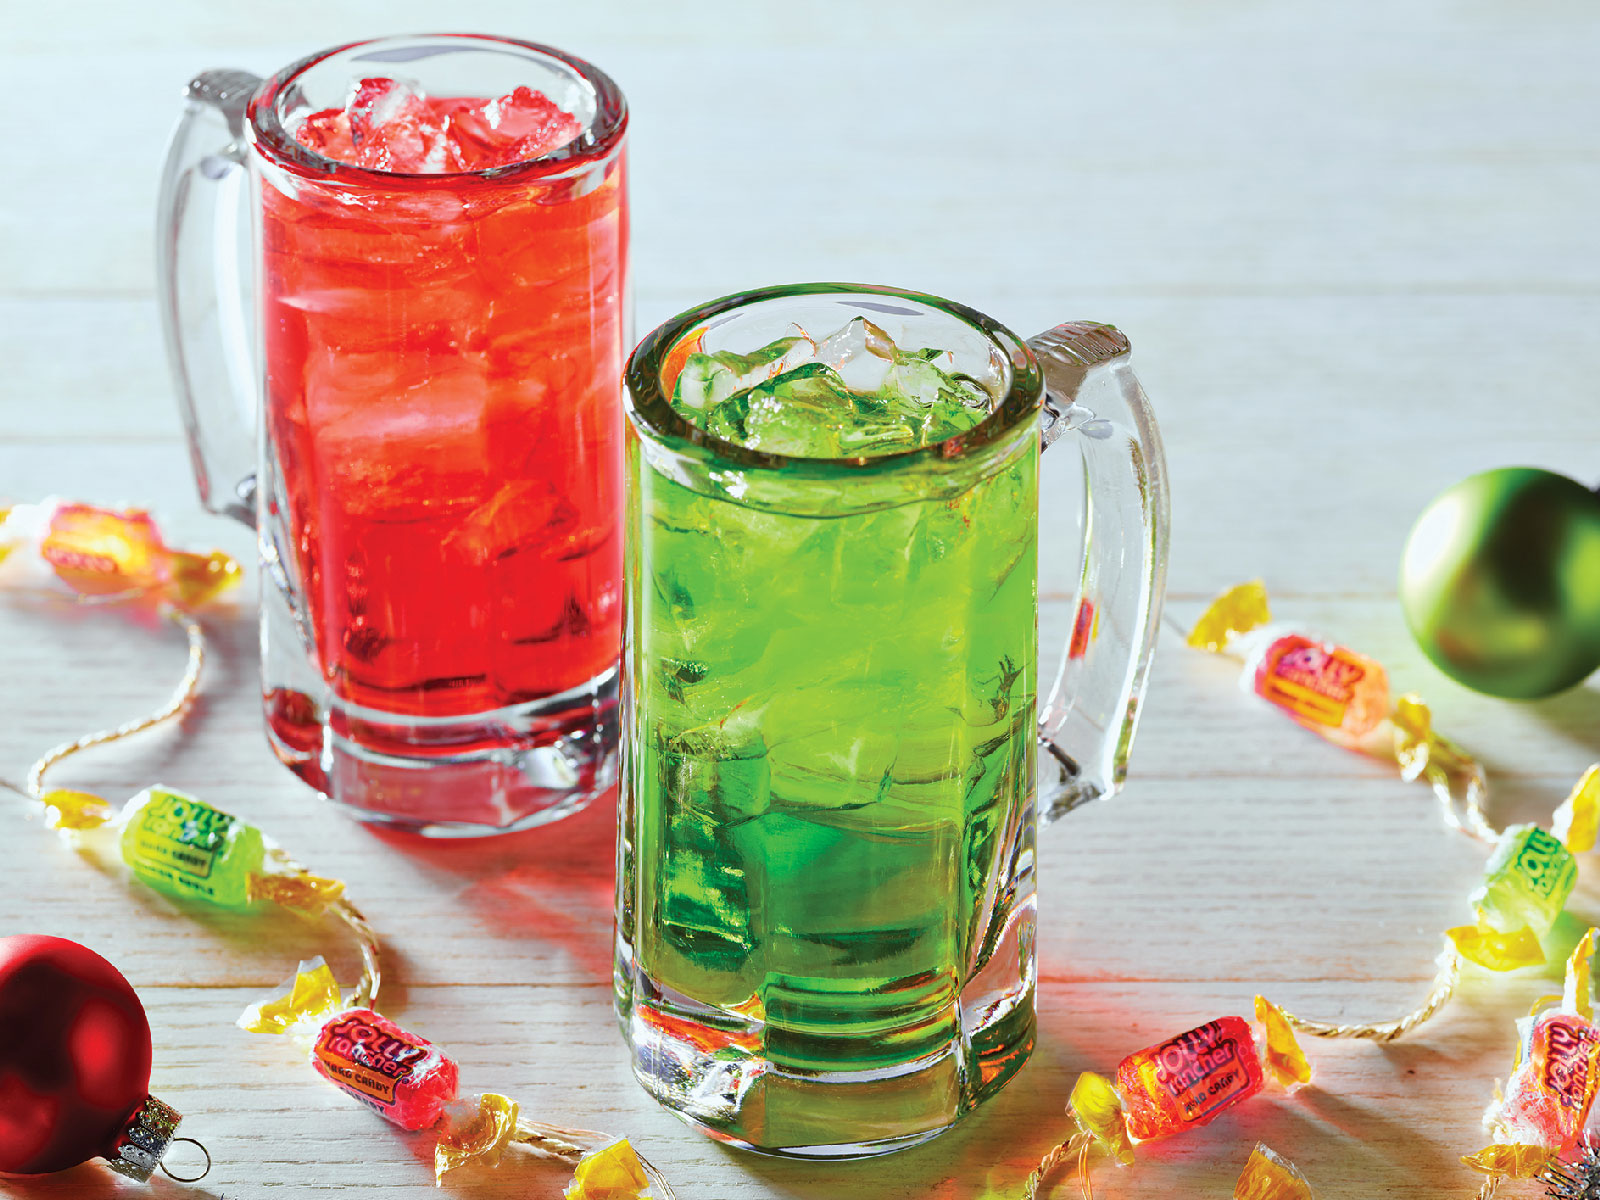 Applebee's Jolly Rancher Cocktail